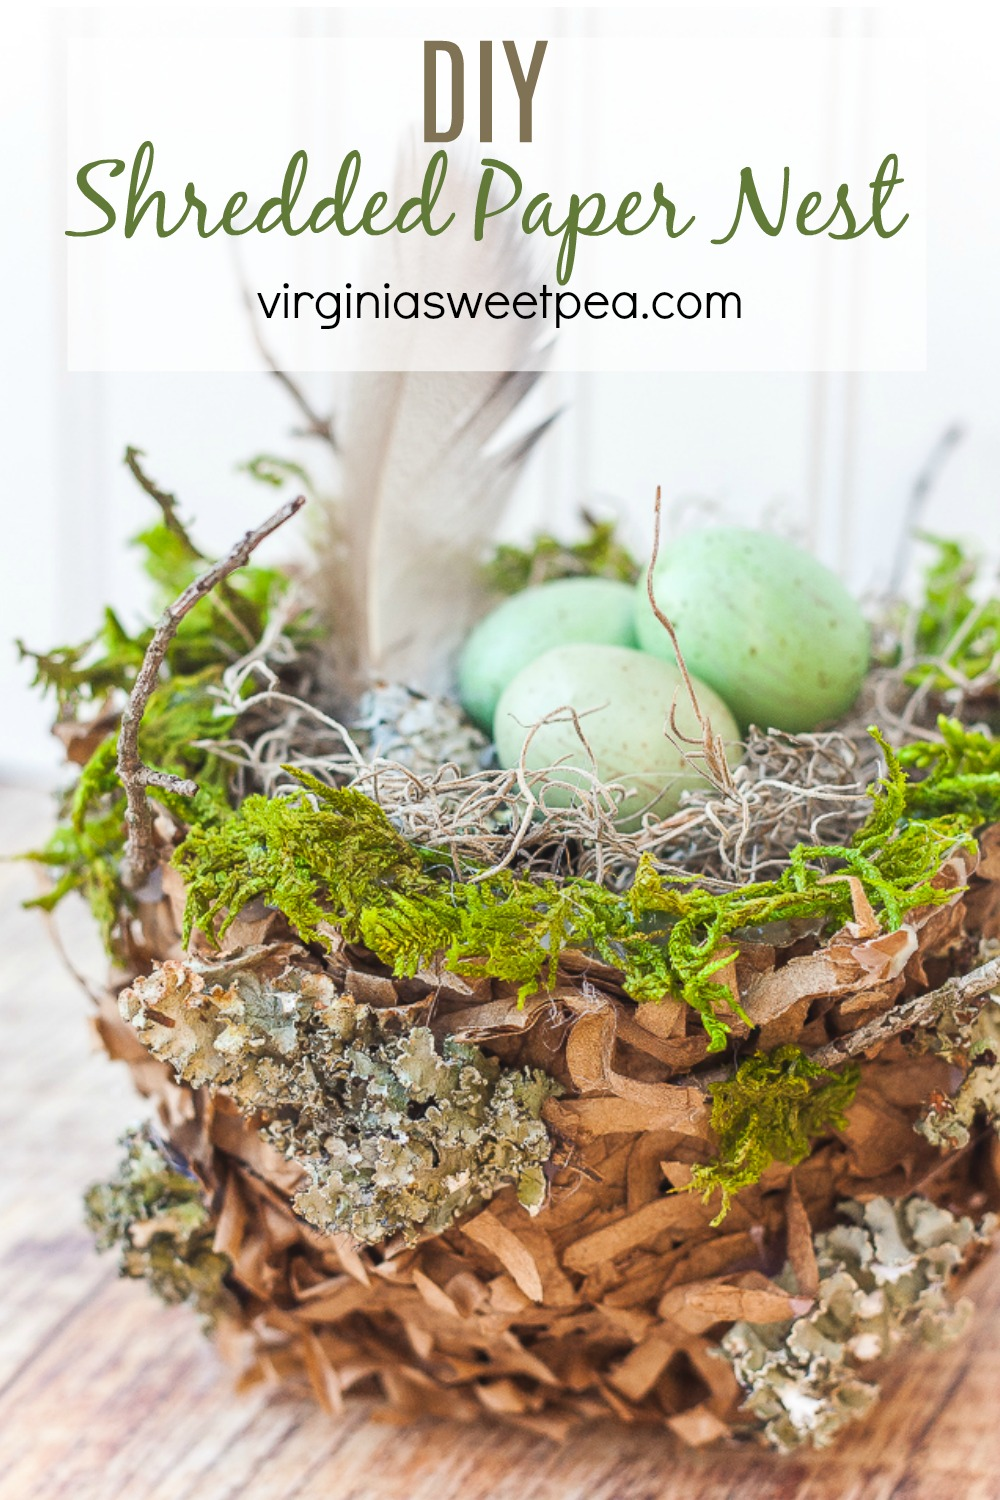 DIY Shredded Paper Nest - Make a realistic spring nest to use for decorating with shredded paper bags. Follow the step-by-step tutorial to make a nest to use in your home. #diynest #howtomakeanest #springnest #shreddedpapernest